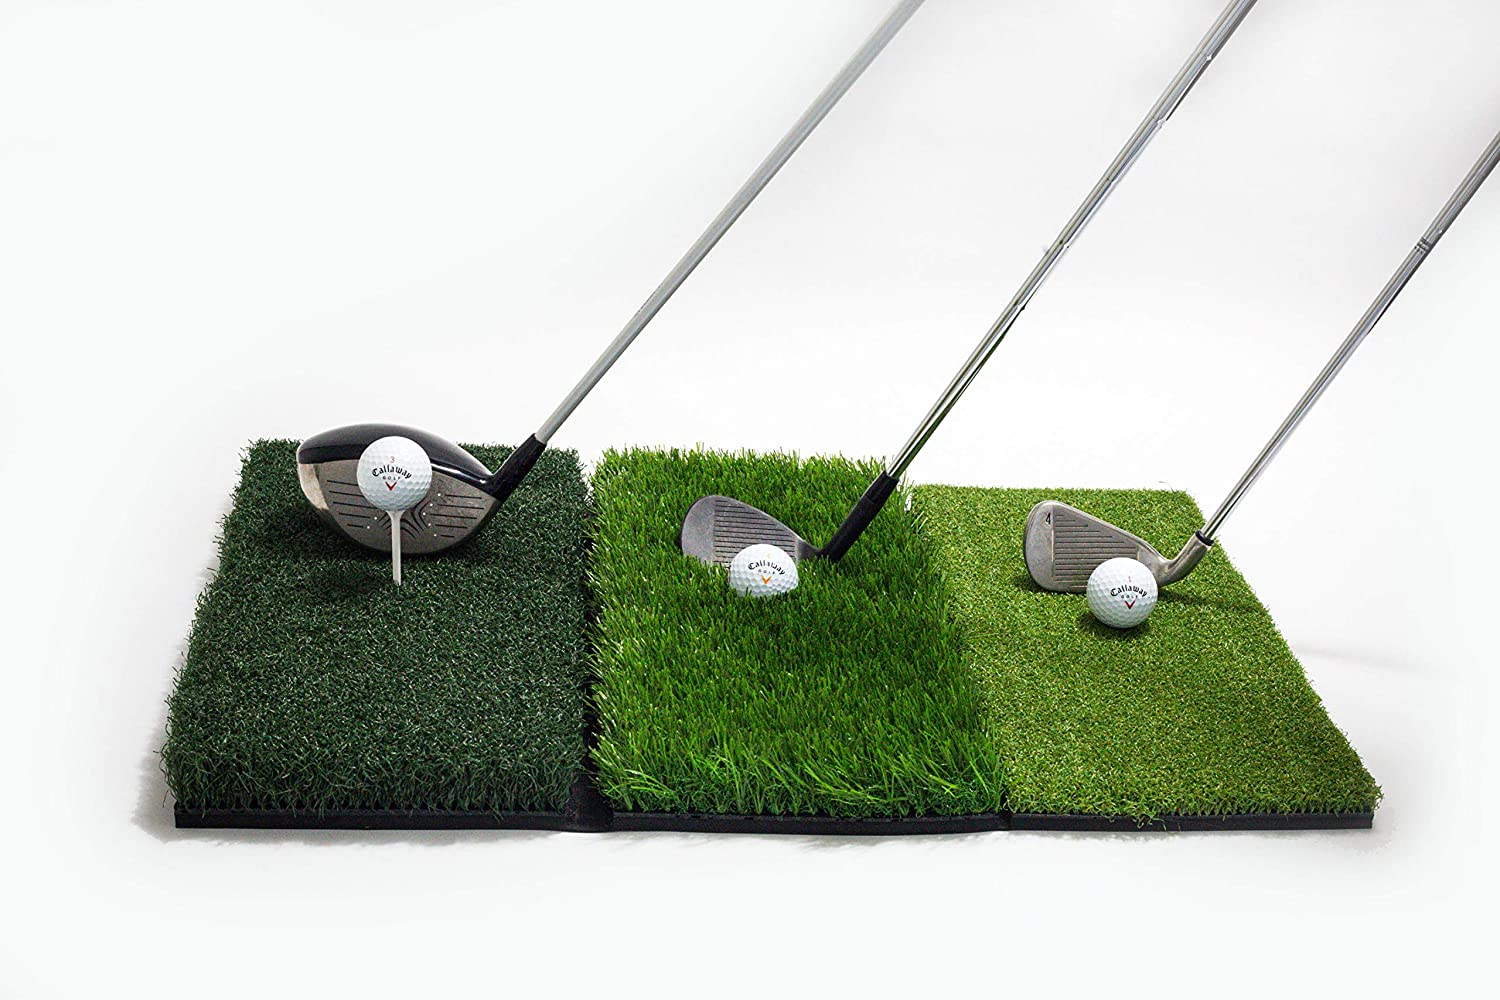 GOLFIT Golf Hitting Mat – 3-in-1 Foldable – Practice Turf Backyard or Indoor Chipping Mat – Portable Premium Quality Realistic Multi-Length Grass 10 Extra Tees